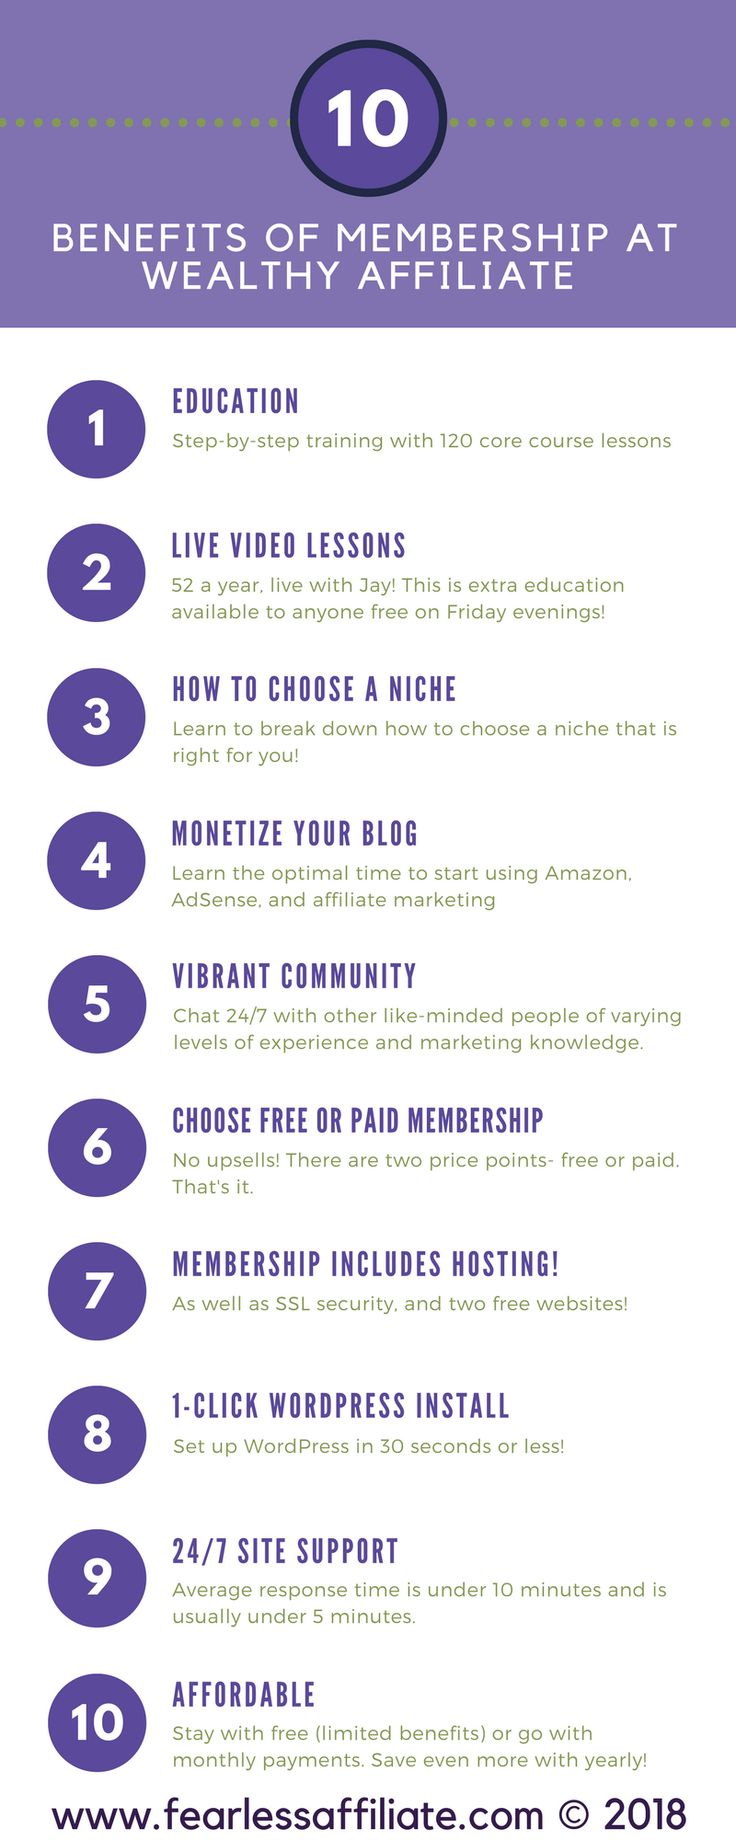 Wealthy Affiliate offers an affordable affiliate education for bloggers who are new to blogging or who are new to affiliate marketing. Along with your membership, you get a host of benefits including Managed WordPress hosting for a fraction of what others charge, SSL, 24/7 chat to get your questions answered and tons more!